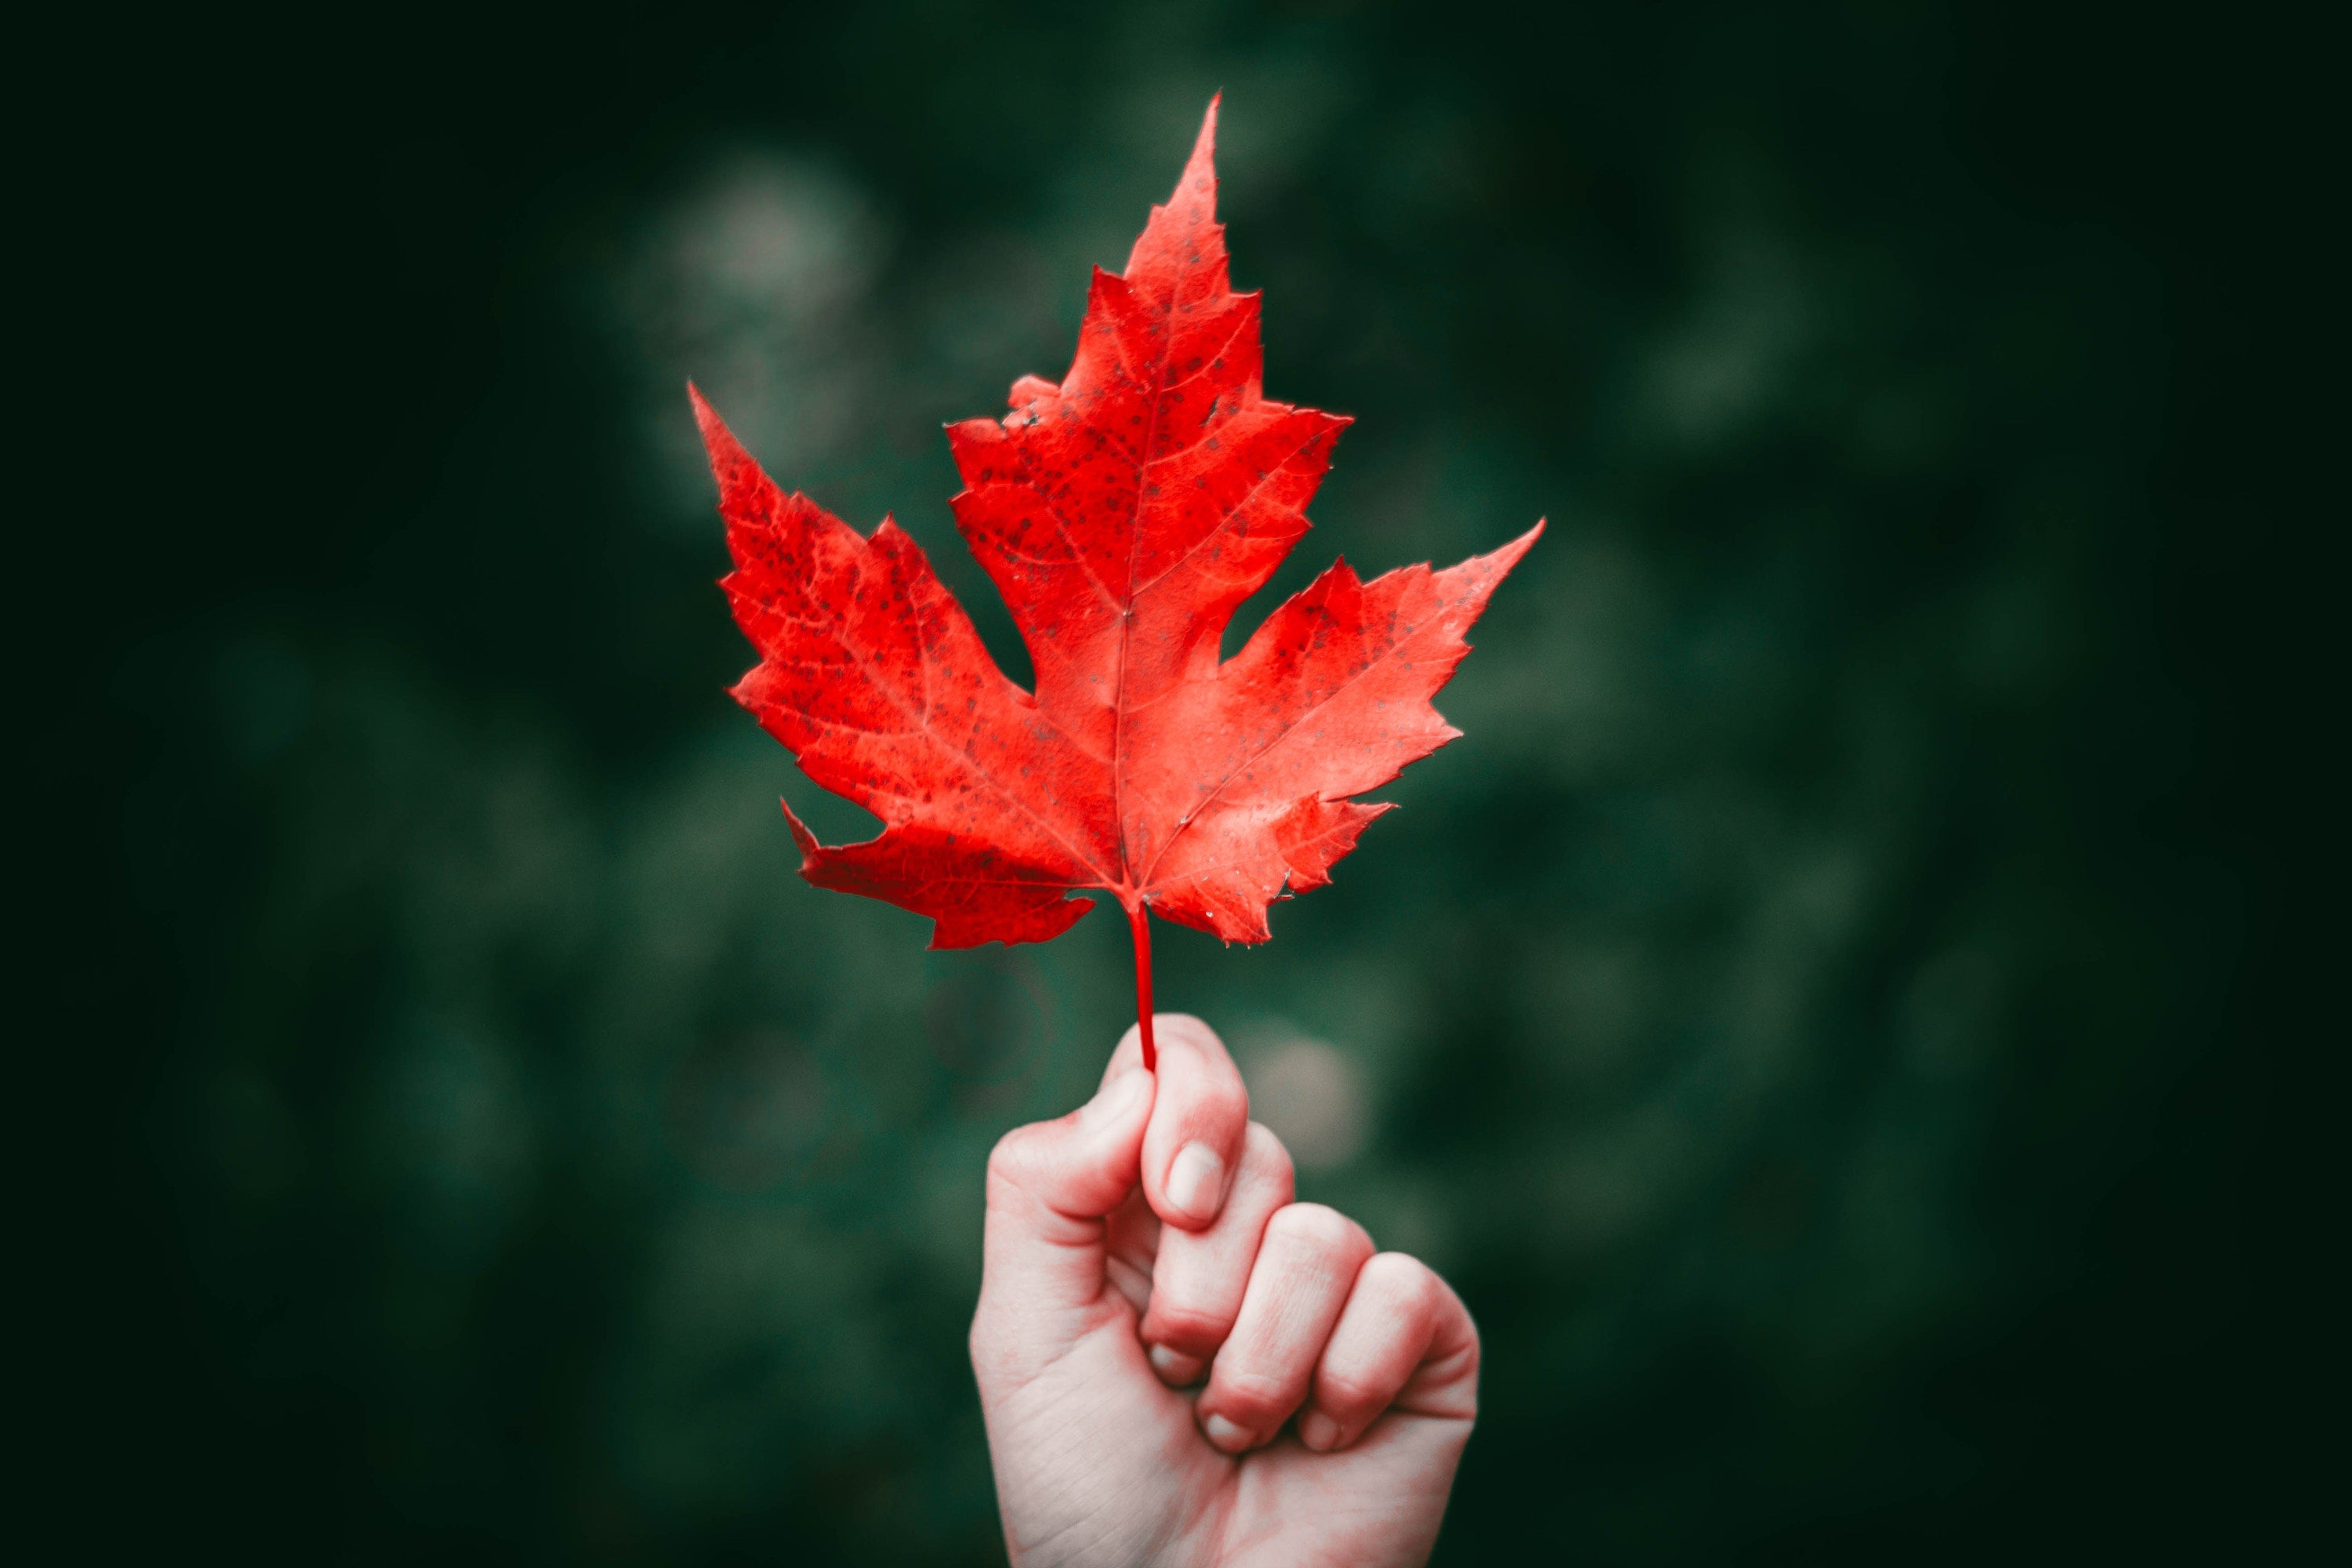 single hand holding a red leaf